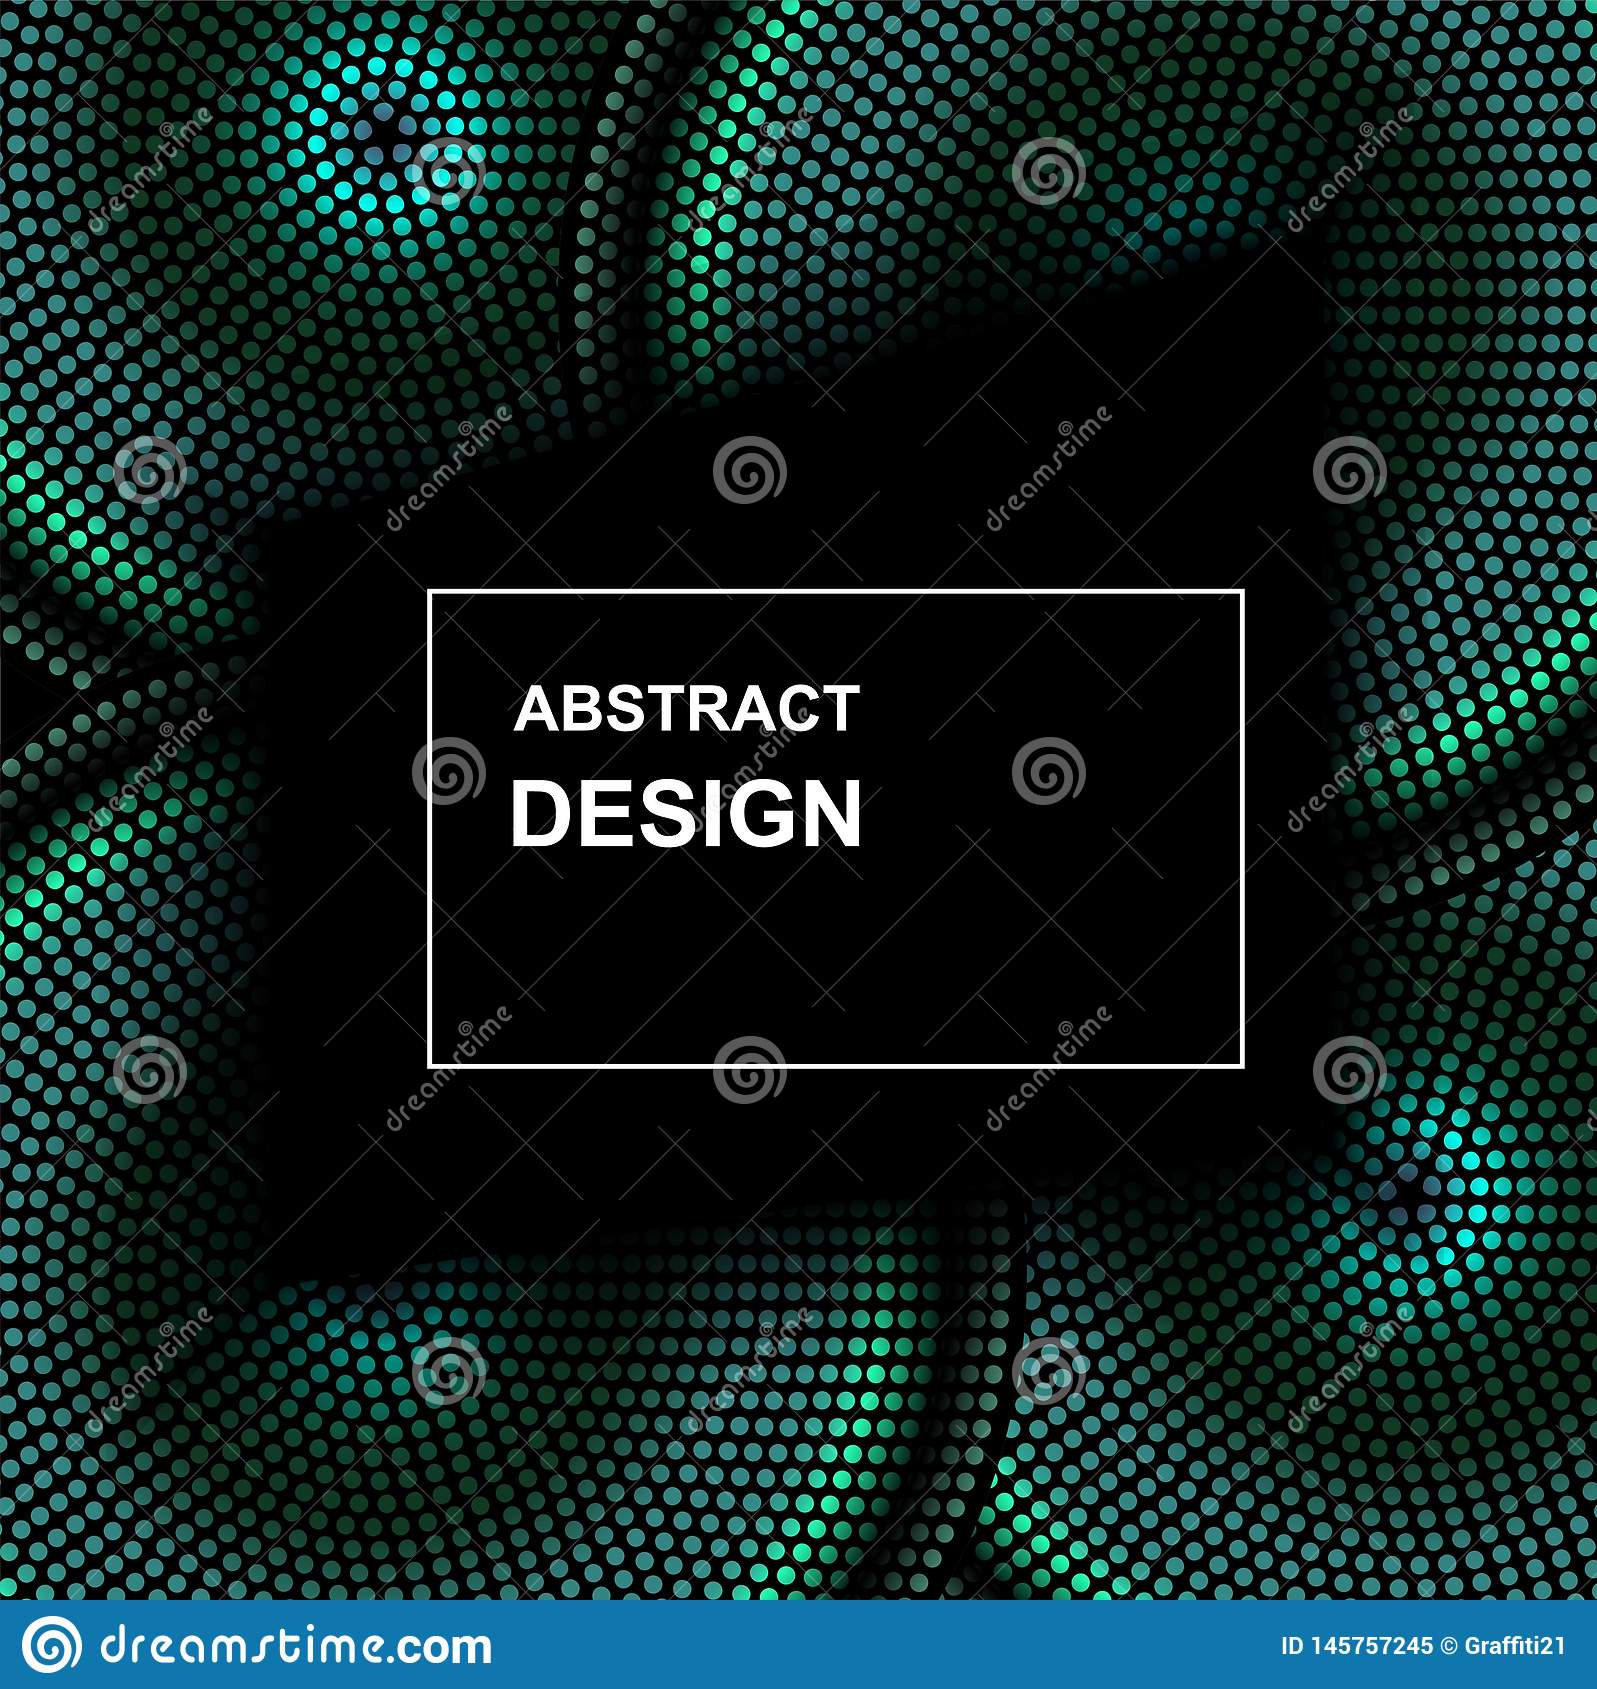 Vector abstract halftone circle frame. Abstract dotted gradient logo design elements. Grunge halftone textured pattern with dots